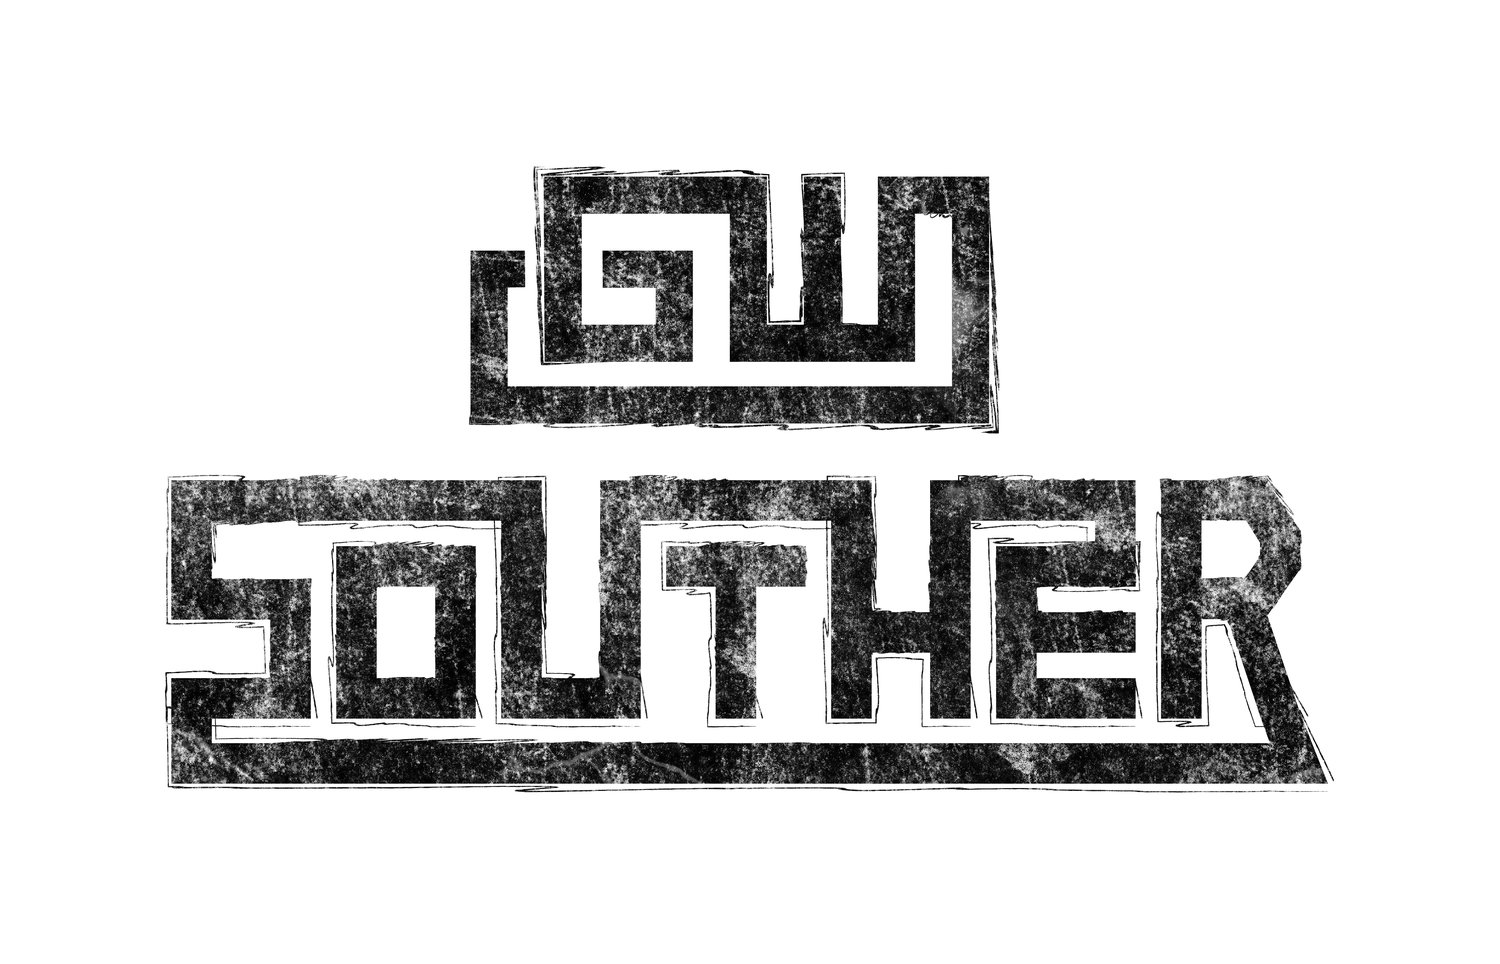 G.W. Souther